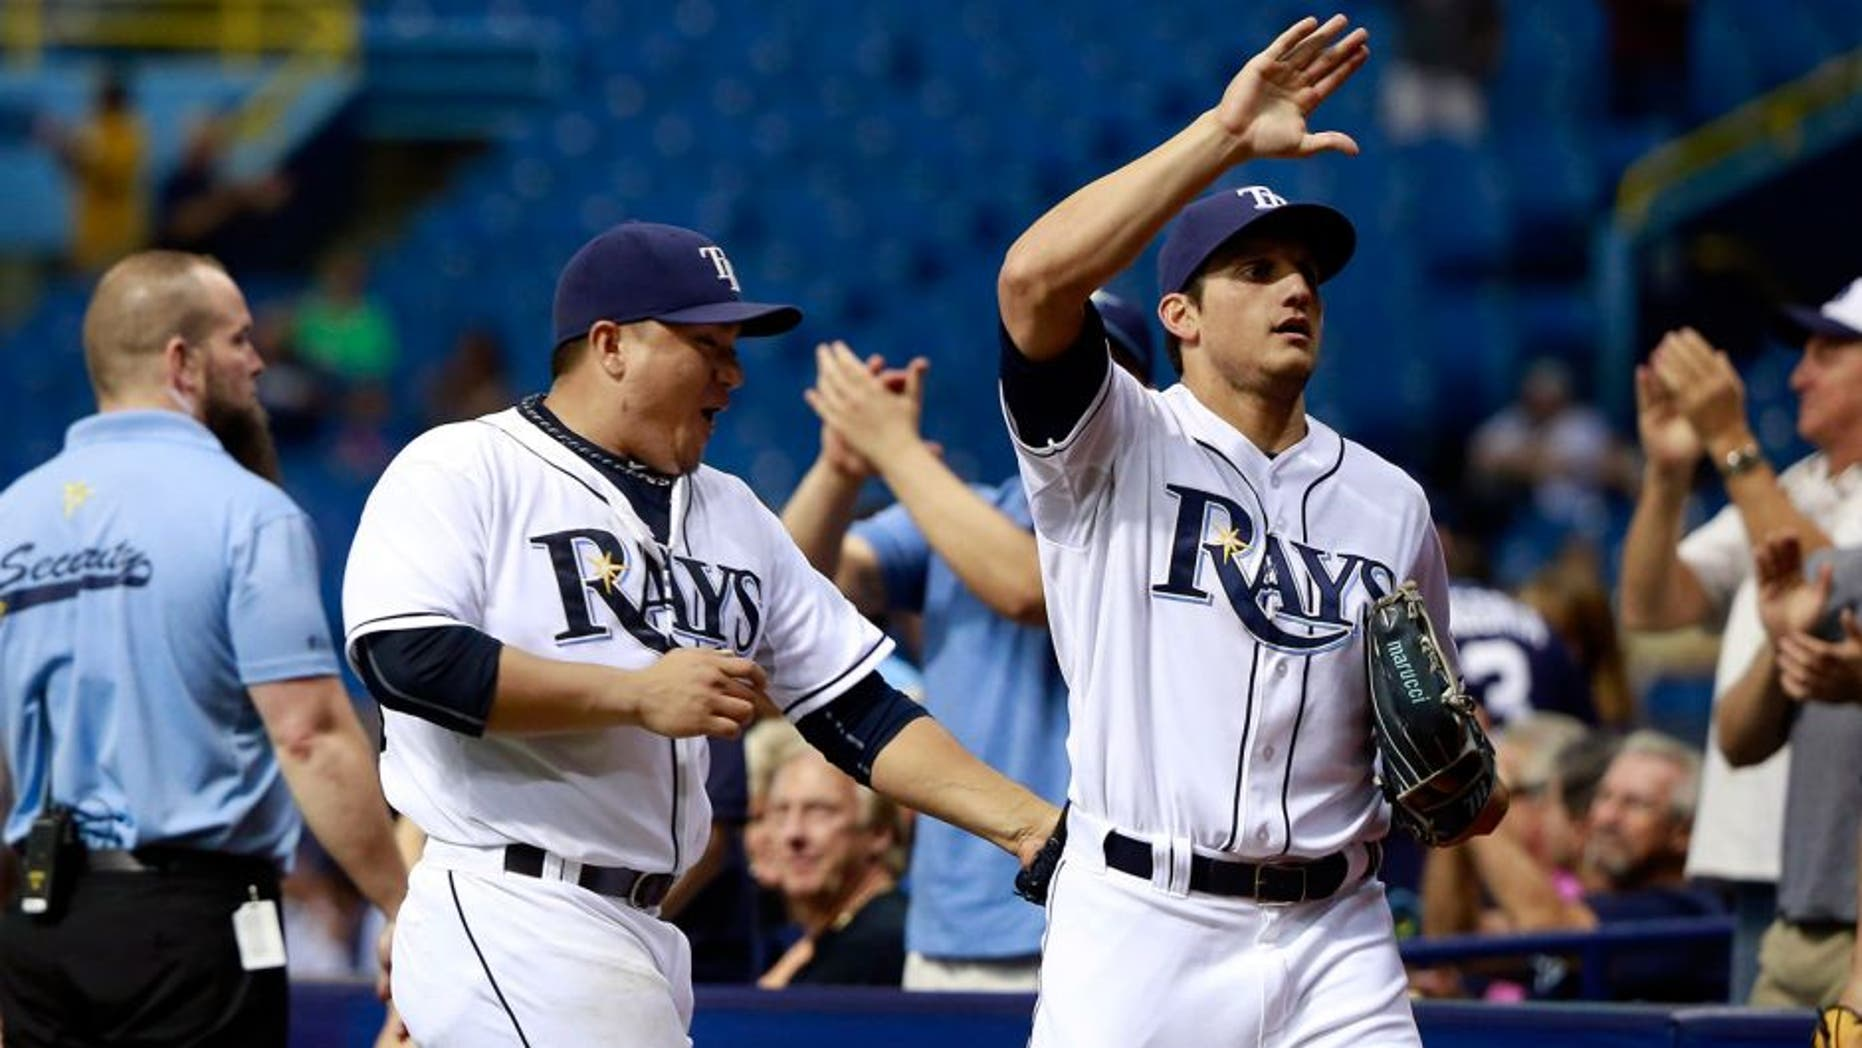 Sep 14, 2015; St. Petersburg, FL, USA; Tampa Bay Rays starting pitcher Erasmo Ramirez (30) high fives Tampa Bay Rays right fielder Mikie Mahtook (27) as he got an unassisted double play to end the seventh inning against the New York Yankees at Tropicana Field. Mandatory Credit: Kim Klement-USA TODAY Sports